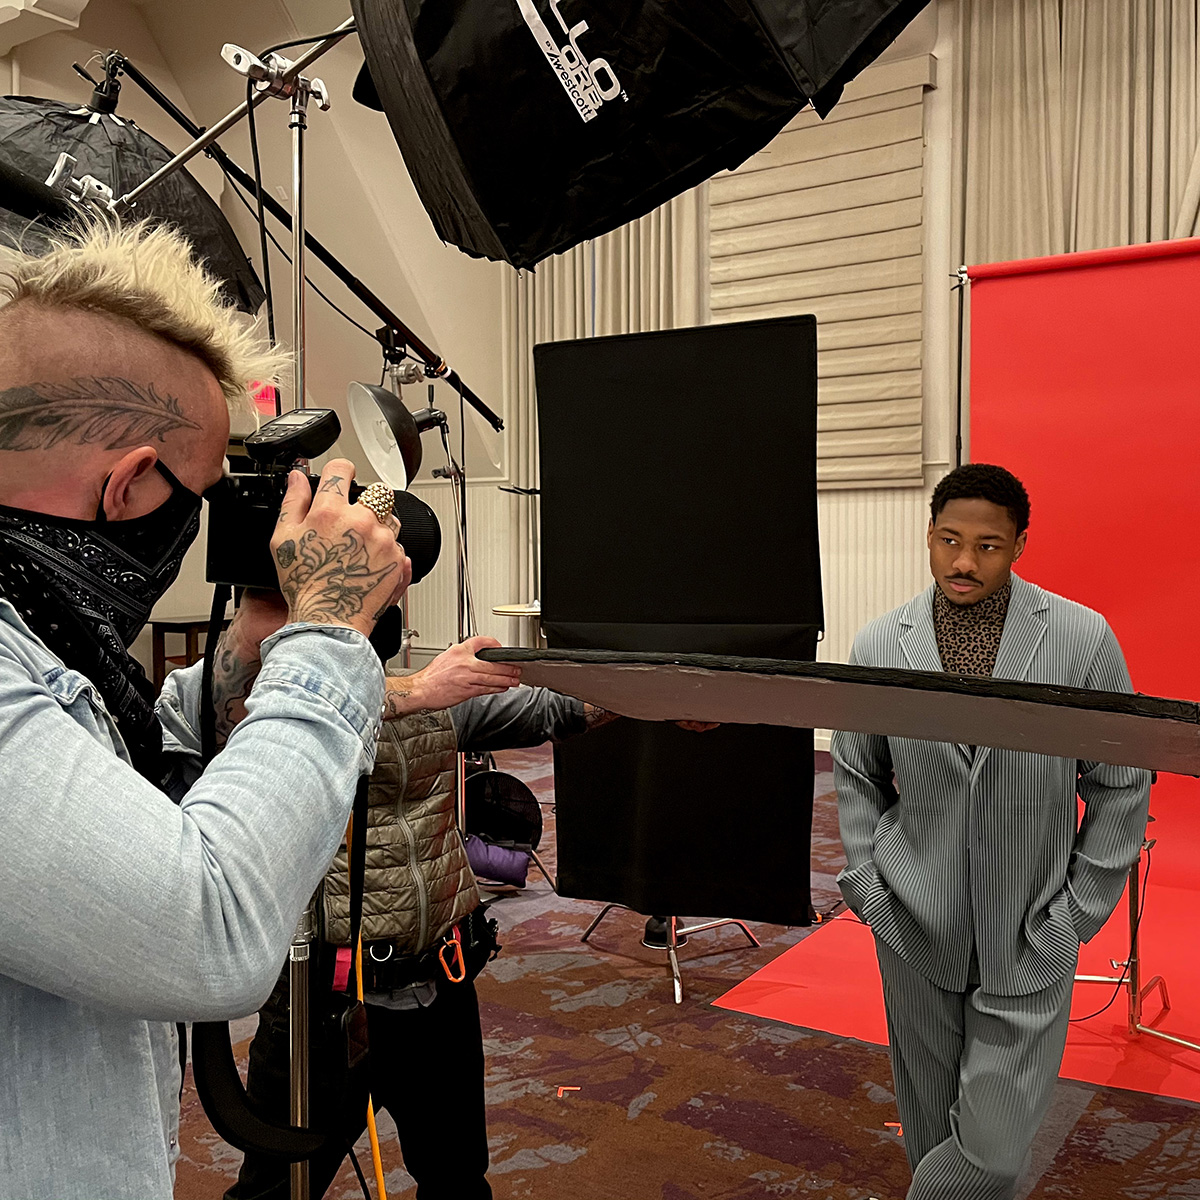 Editorial and commercial photographer Clay Patrick McBride photographs Stefon Diggs.